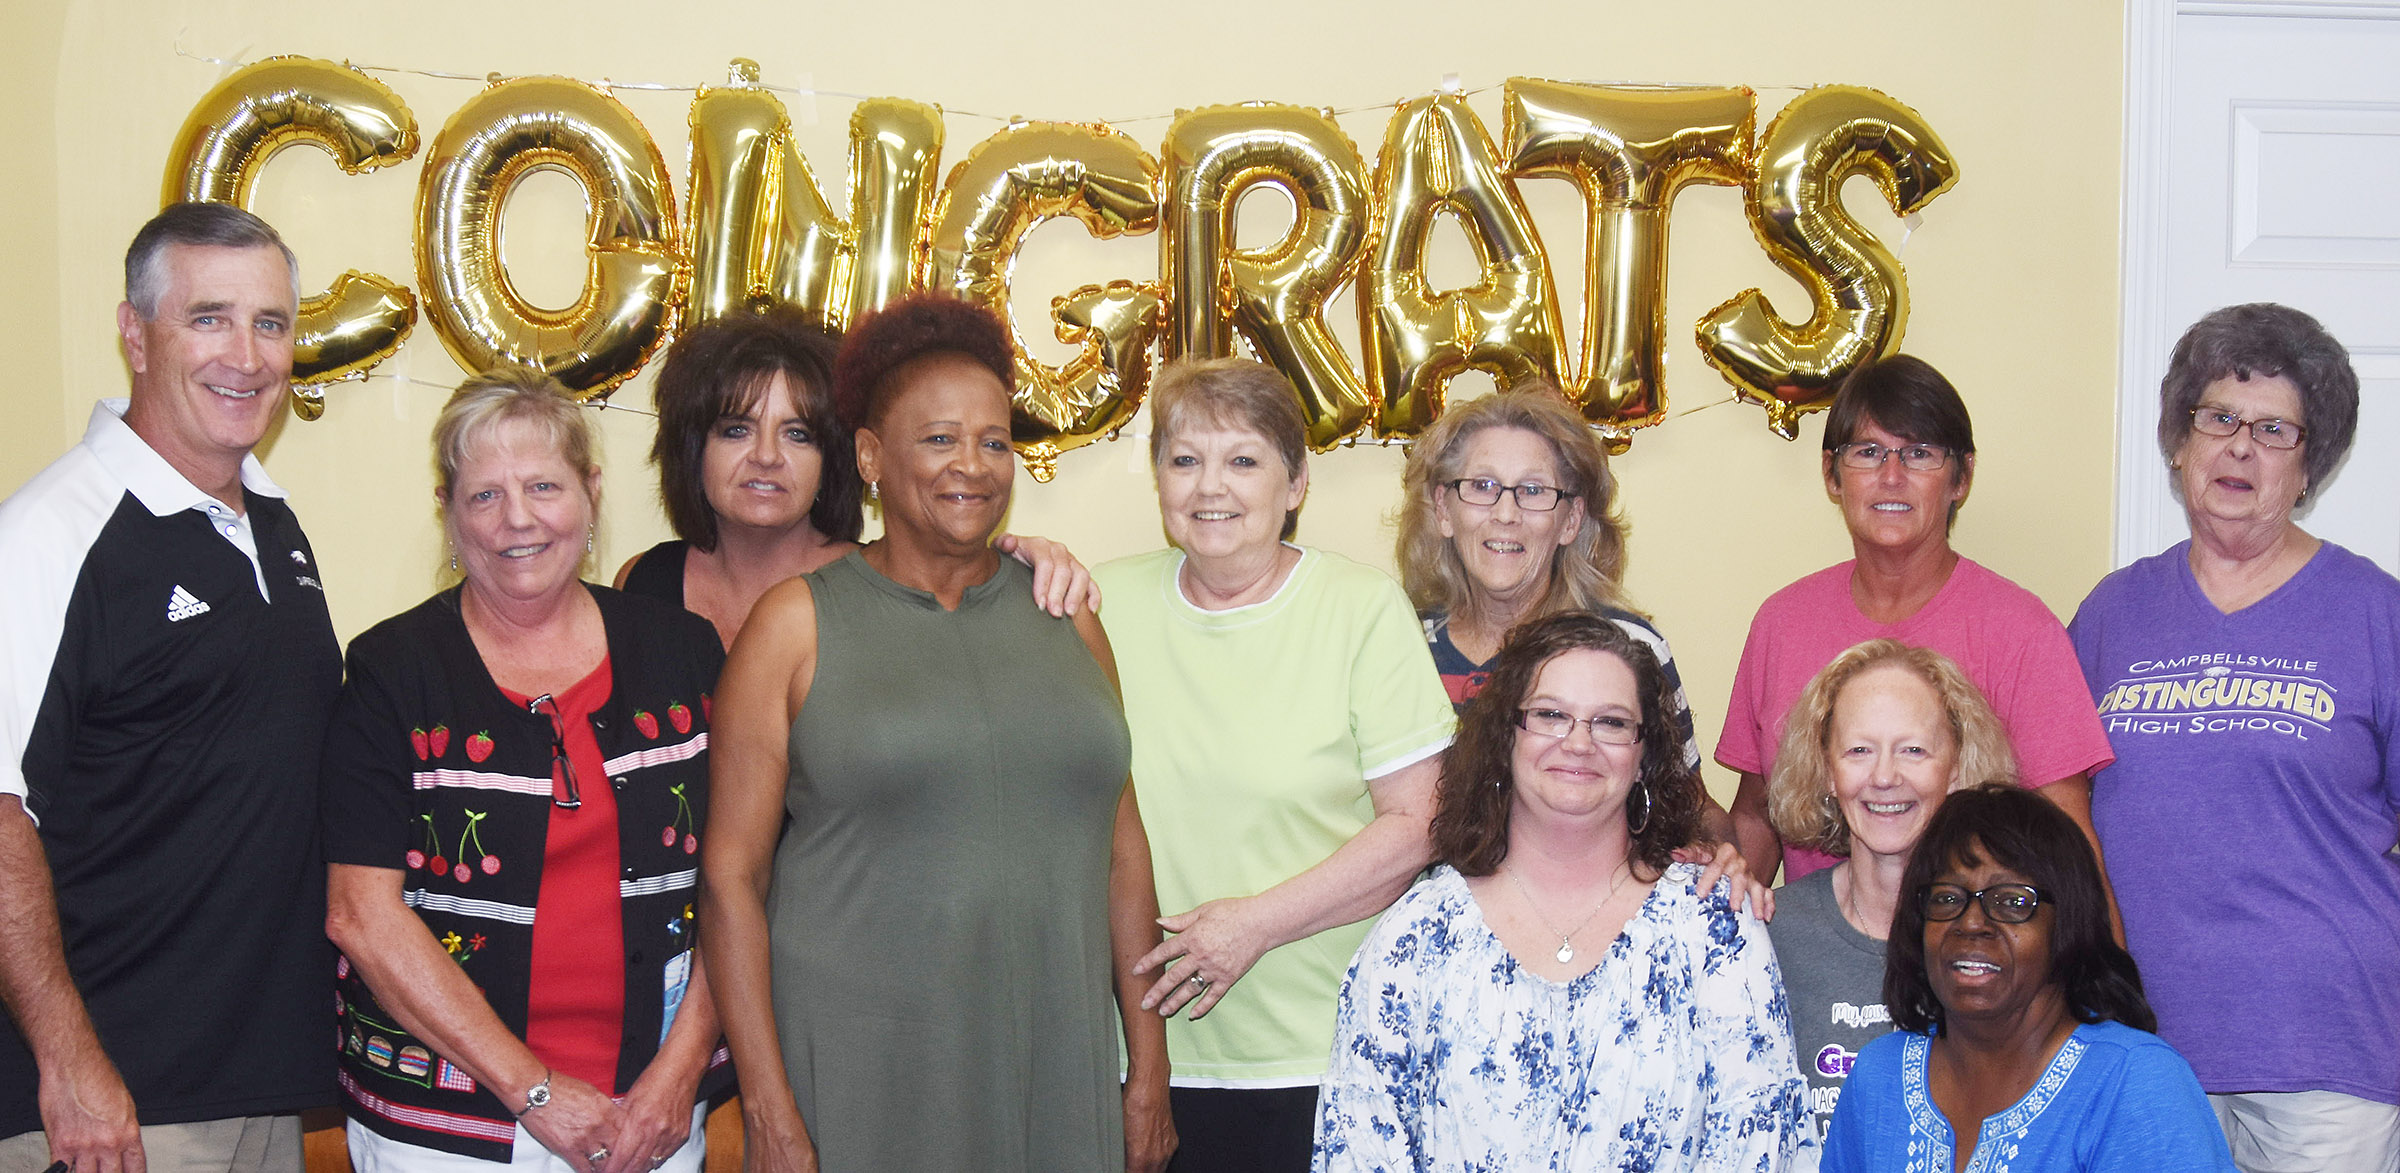 Jeff Richardson, director of pupil personnel and food service, retired last month and was honored on Monday, July 30, during a special luncheon. Richardson, at left, is pictured with the CIS food service workers. From left are Gilly Beard, Shelly Wilson, Lavada Gaddie, Eveleen Burkhead, Mildred Beard, Tina Pike, Bobbi Faulkner, Lois Lacy, Ruth Allen and Laura Taylor.